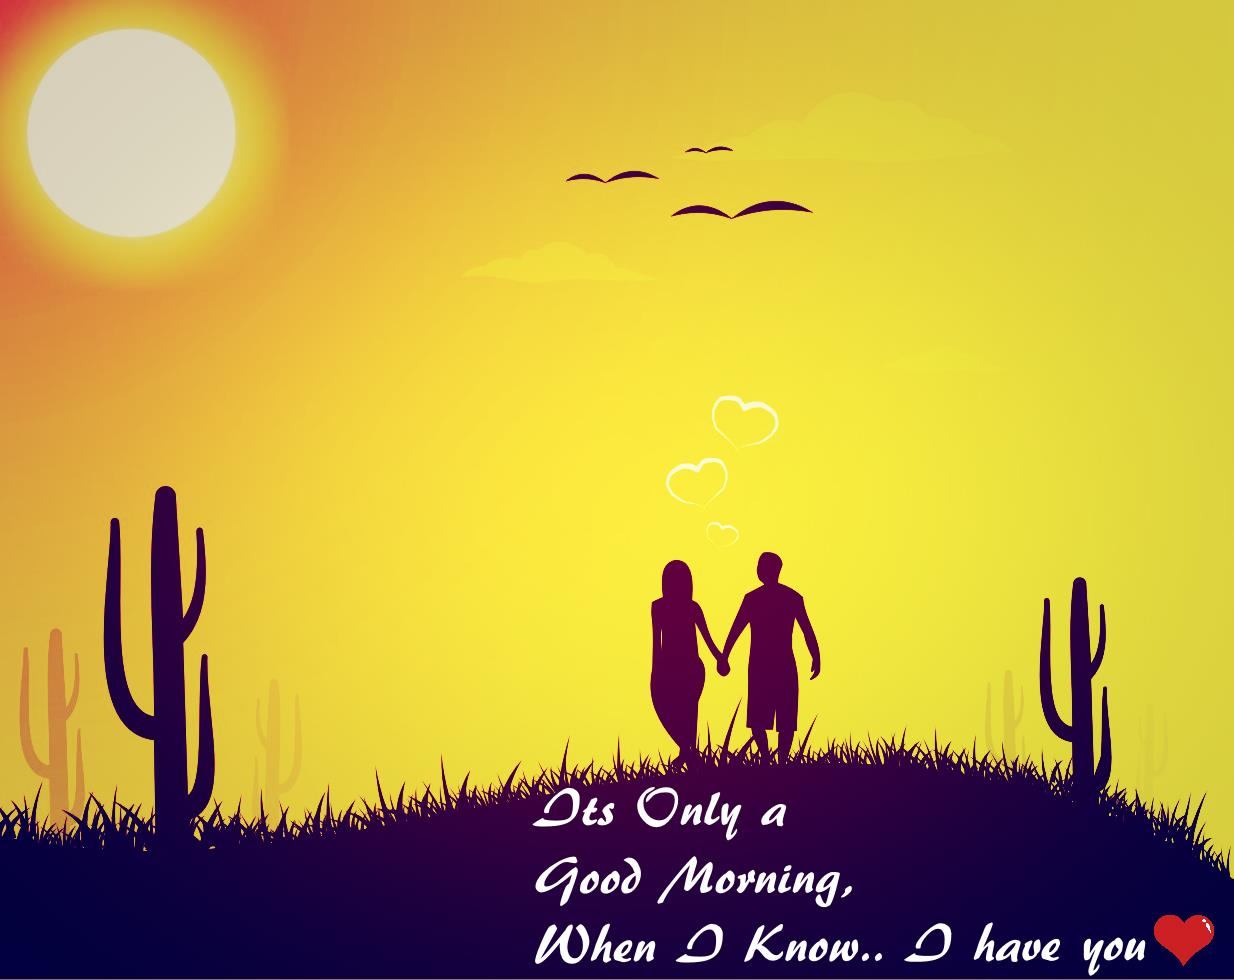 Love Good Morning Wish Wallpaper : Good Morning Wallpapers Free Download